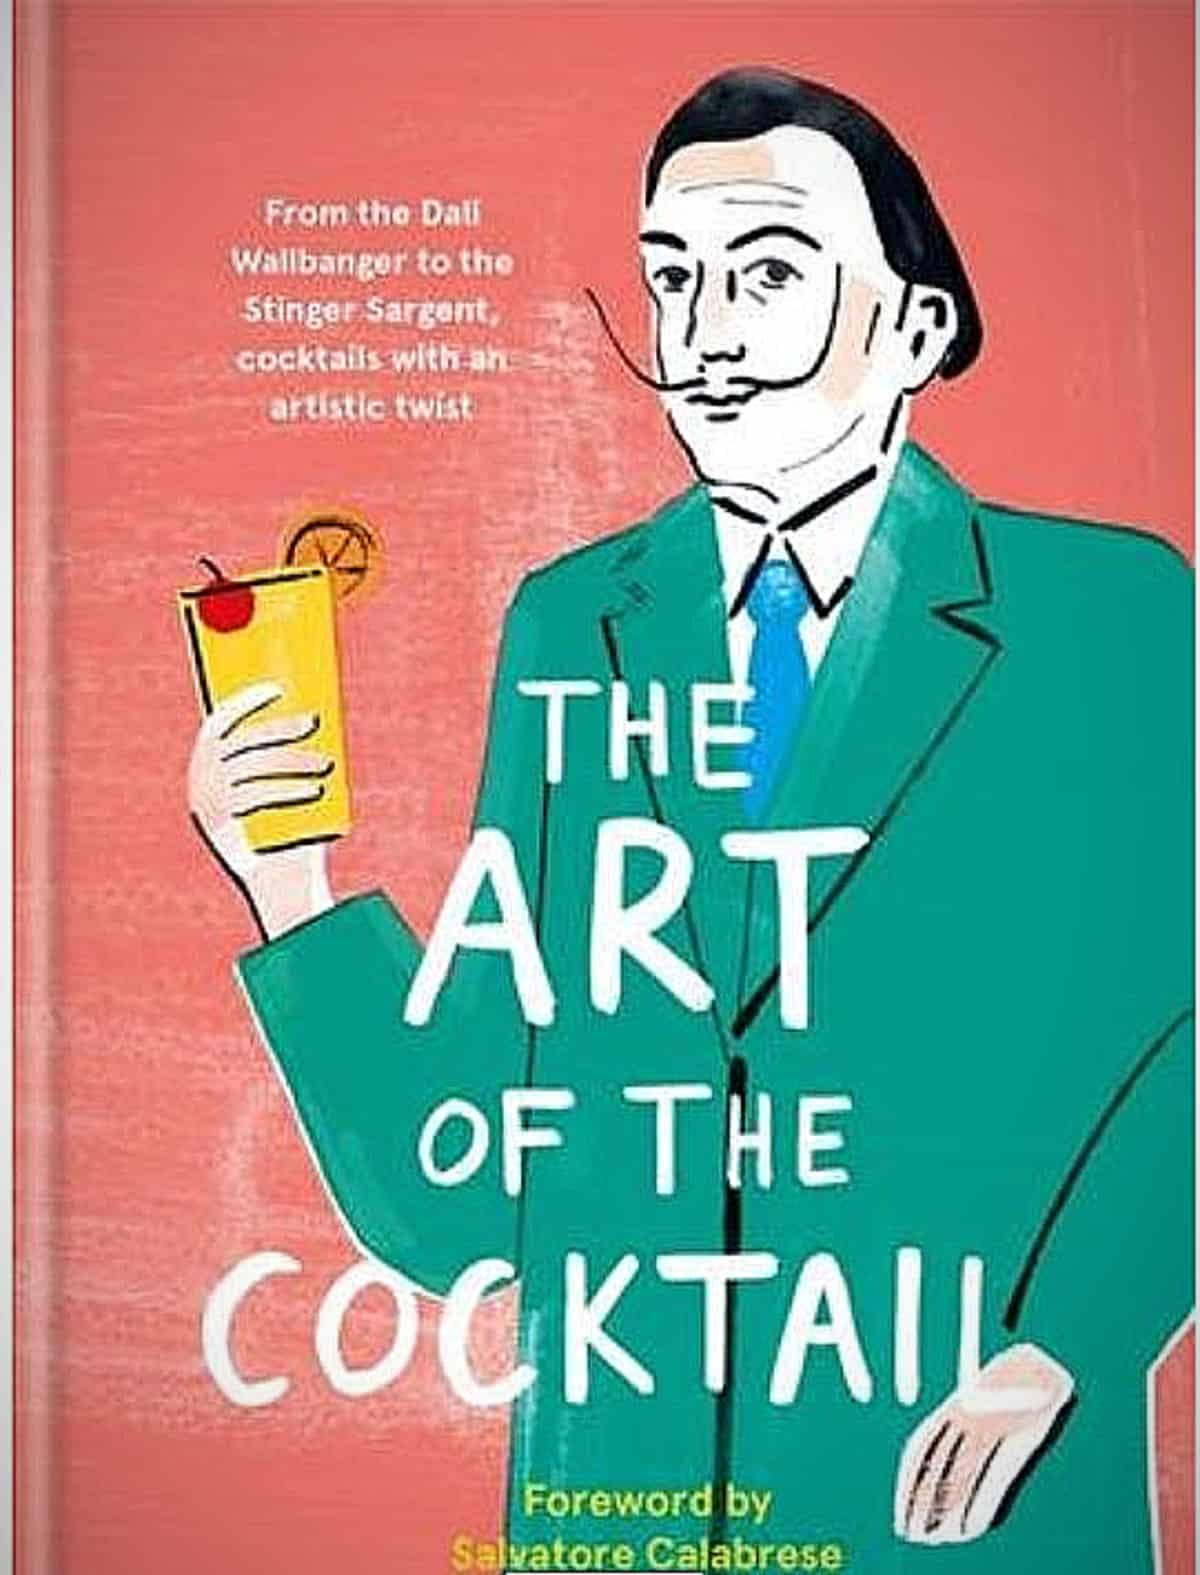 Artfully inspired cocktails and a fun read. Pic credit: Octopus.